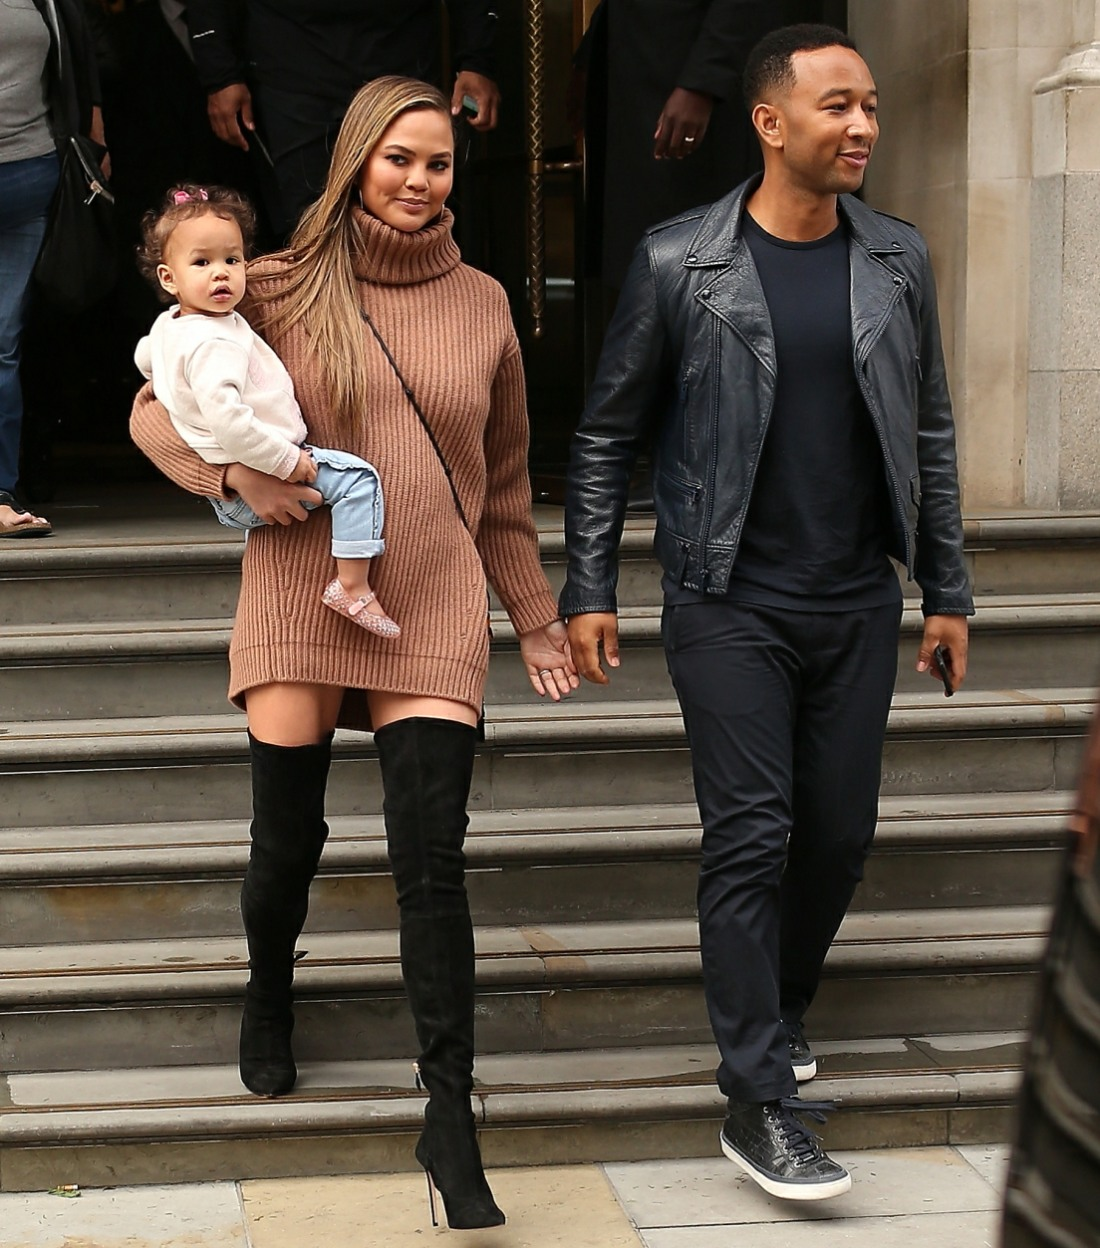 John Legend and Chrissy Teigen leave Corinthia Hotel with their daughter and head for a late lunch